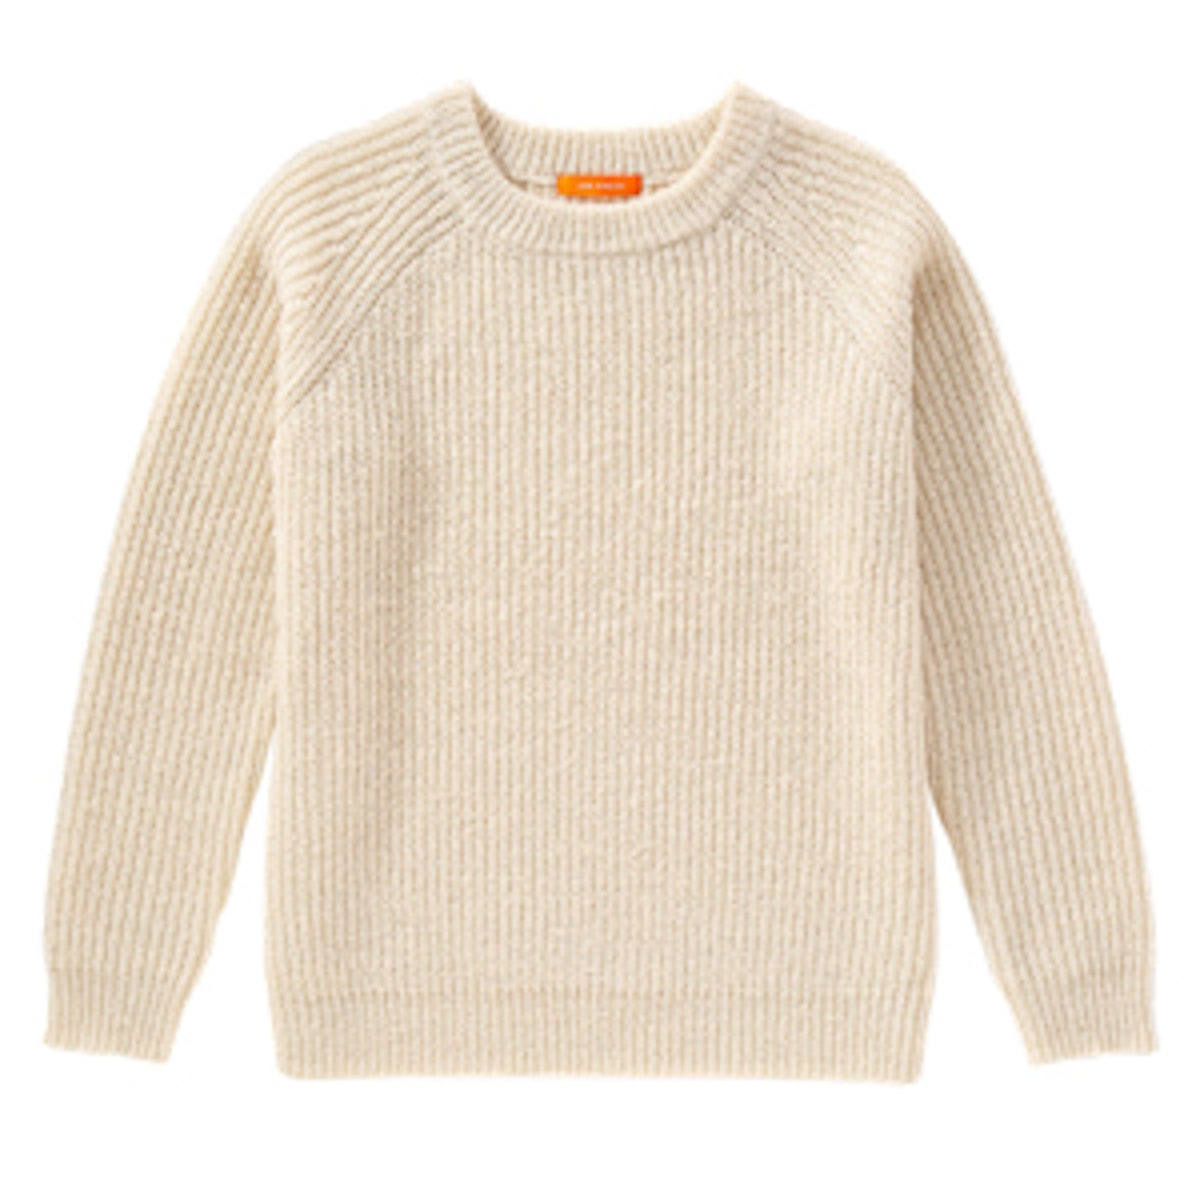 Thick Shaker Knit Sweater